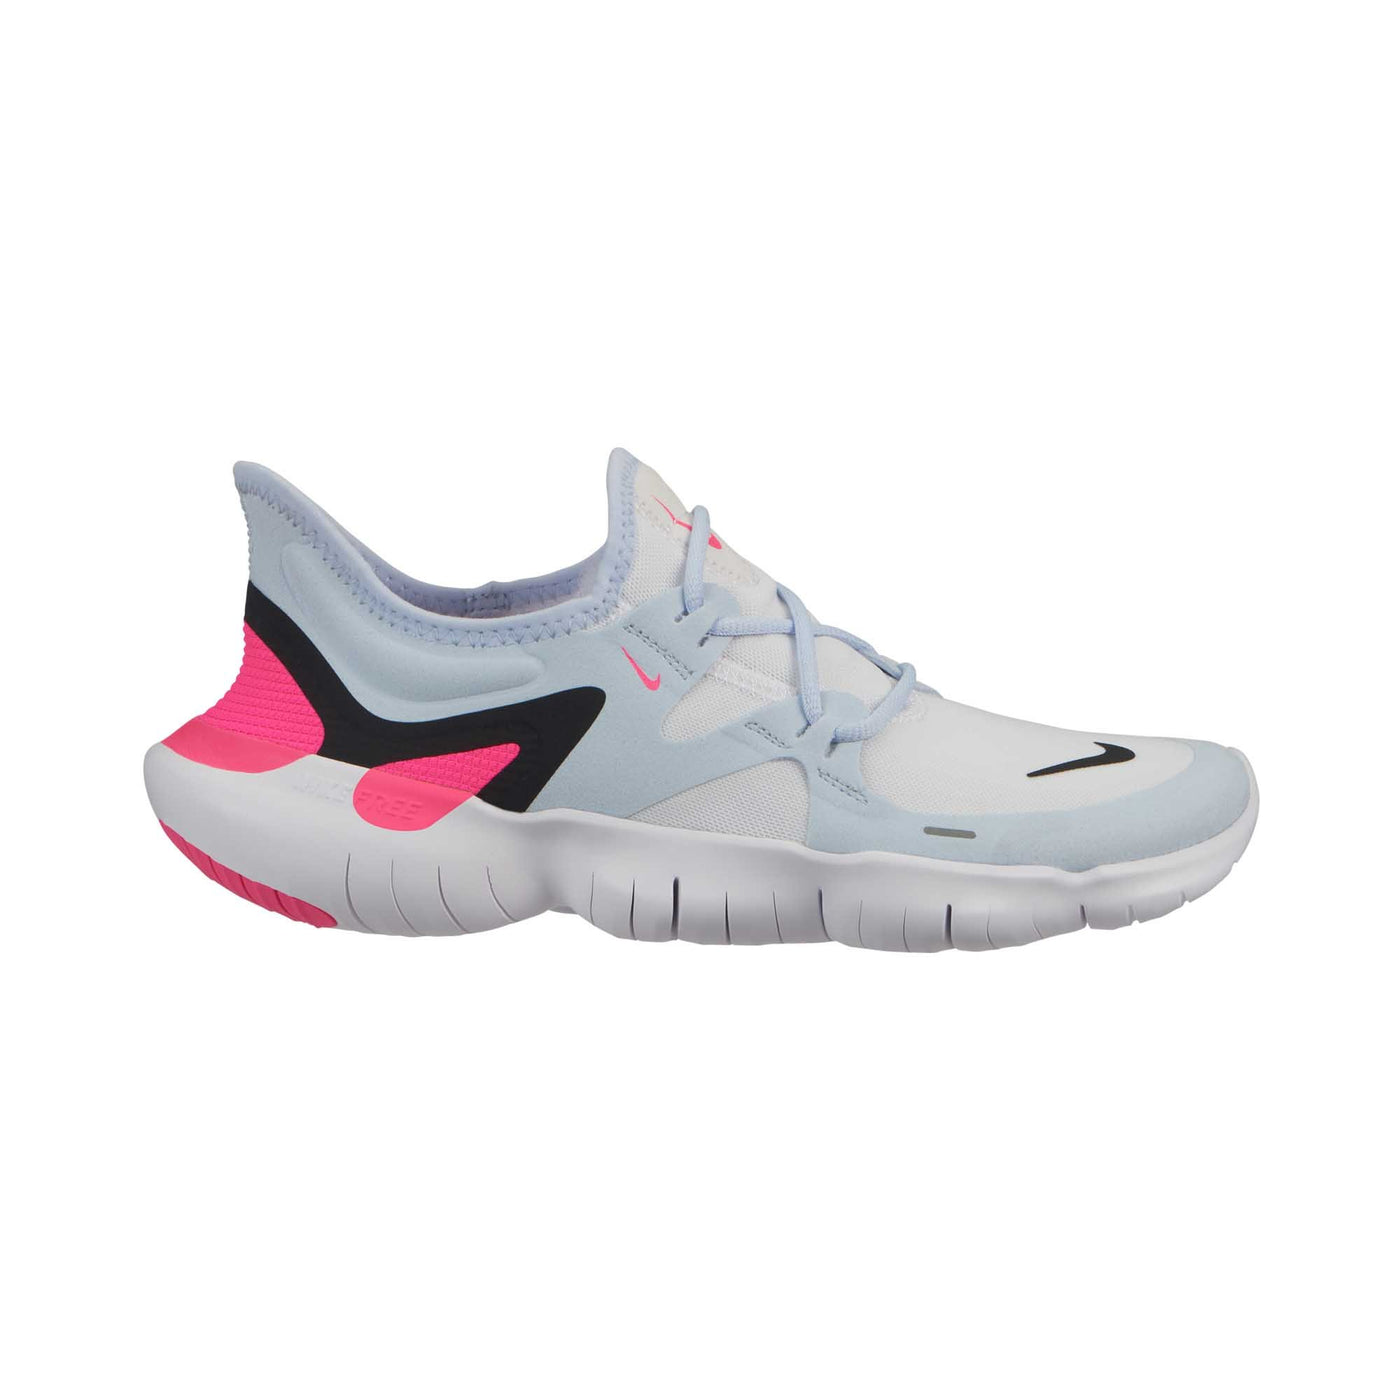 1255b80c95b Women Free Run 5.0 Running Shoes